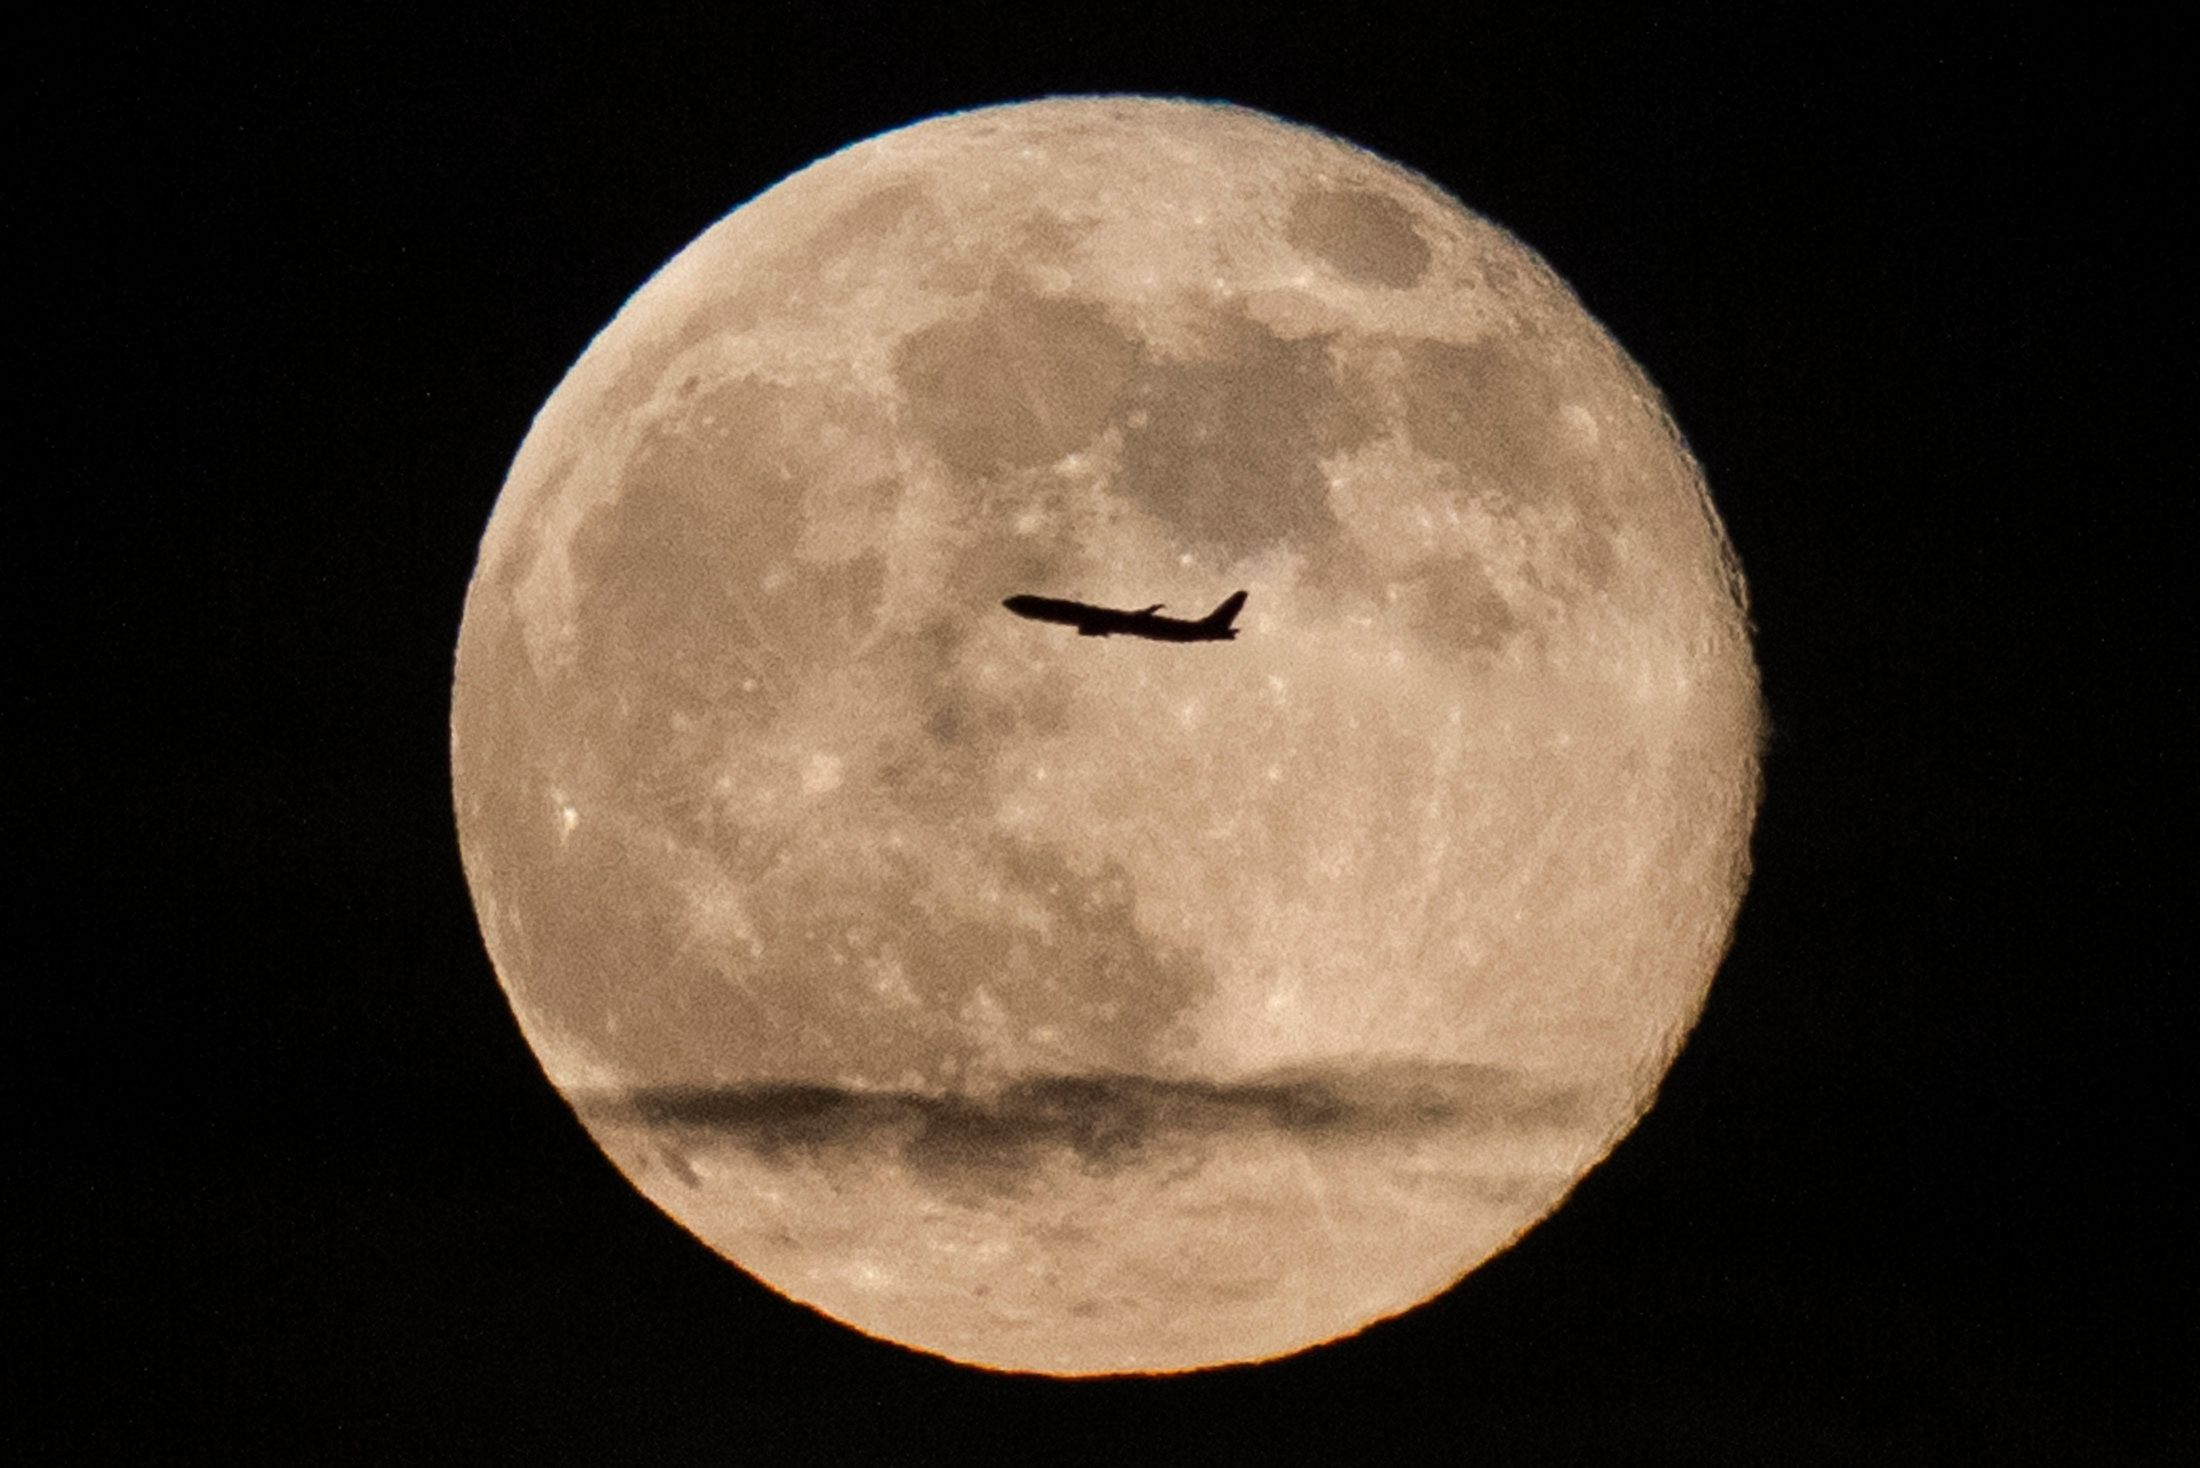 """A silhouetted airplane flies past a 'super moon' over New York on June 23, 2013. The largest full moon of the year called the """"super moon"""" will light up the night sky this weekend.   REUTERS/Zoran Milich (UNITED STATES - Tags: ENVIRONMENT TRANSPORT TPX IMAGES OF THE DAY)"""